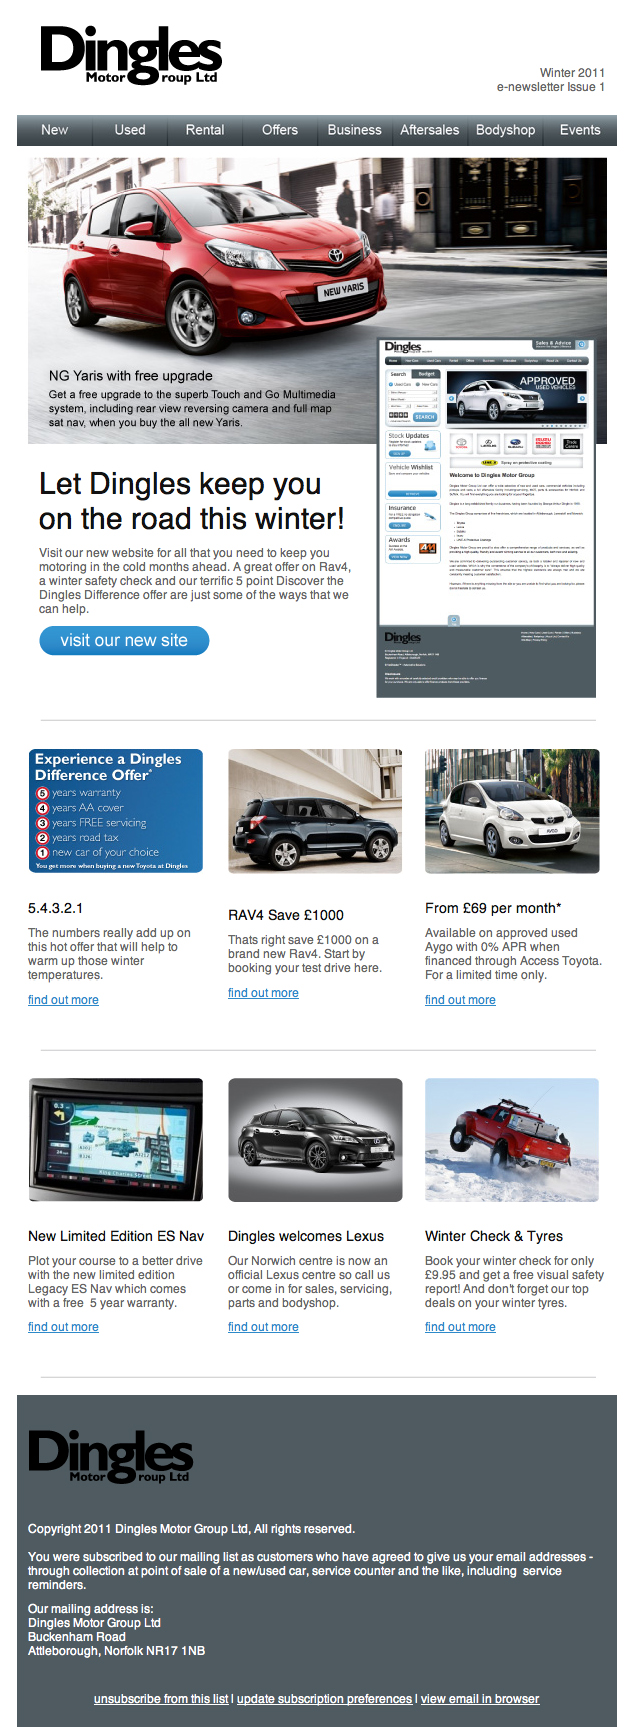 Dingles Motor Group e-newsletter